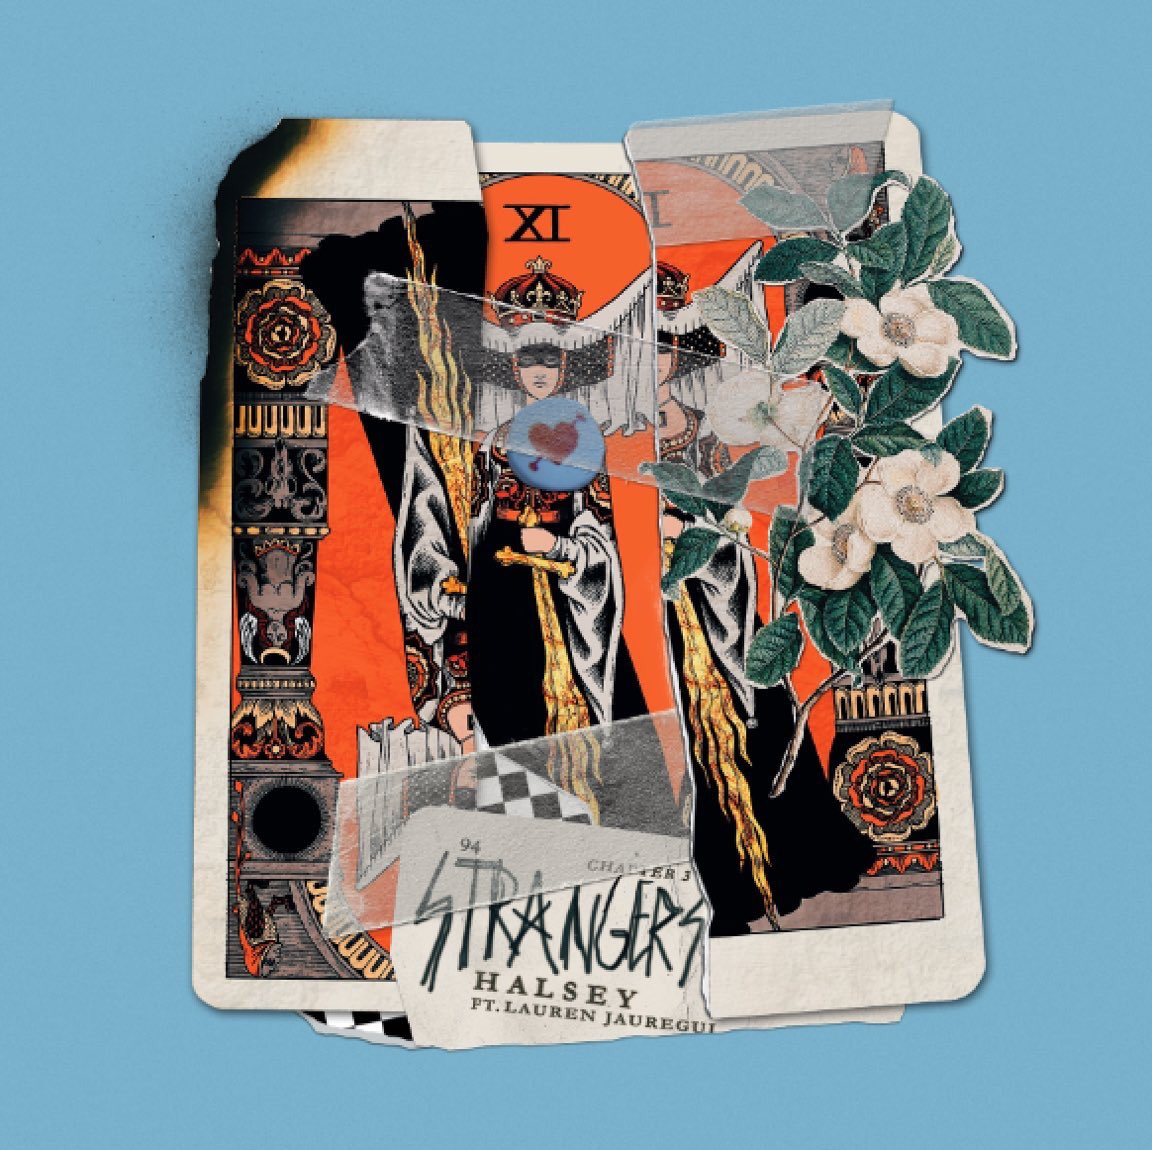 &#39;Strangers&#39; is the new single from @Halsey and features @FifthHarmony&#39;s @LaurenJauregui AND it&#39;s out tomorrow!  #NewMusicFriday <br>http://pic.twitter.com/PqC7EGEiX4